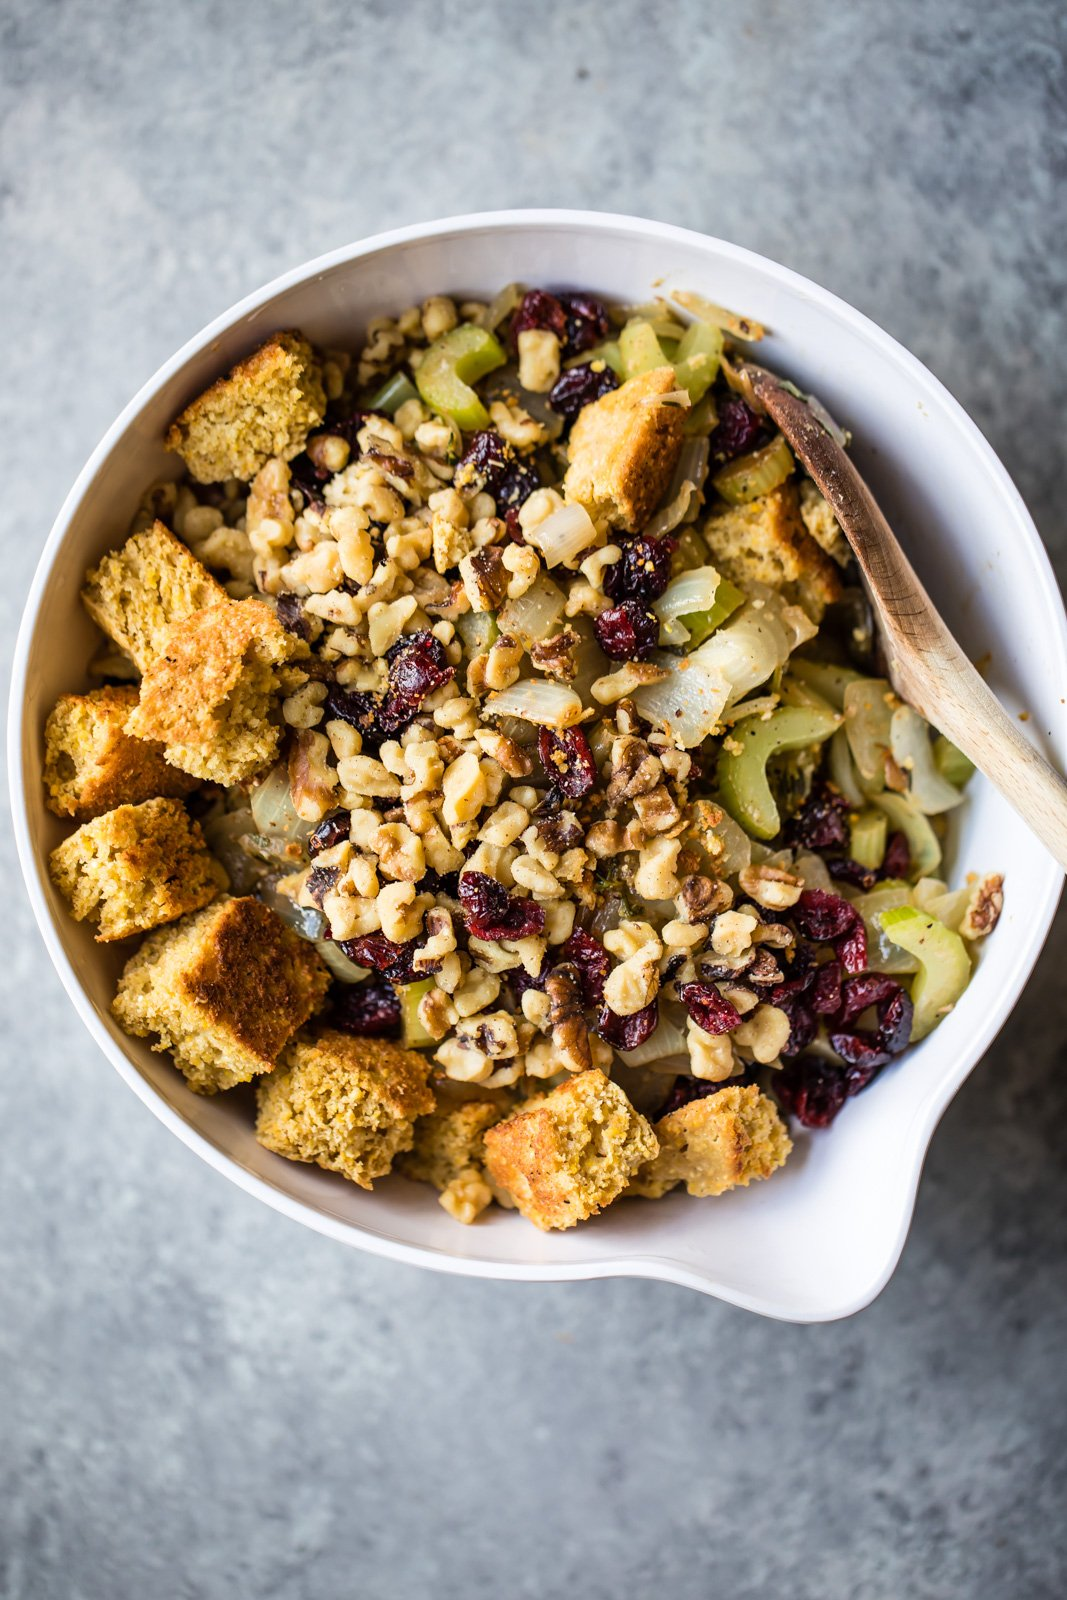 A lightened-up, gluten free take on a Thanksgiving classic! This cornbread stuffing has bites of sweetness from dried cranberries and incredible flavors from thyme and sage.